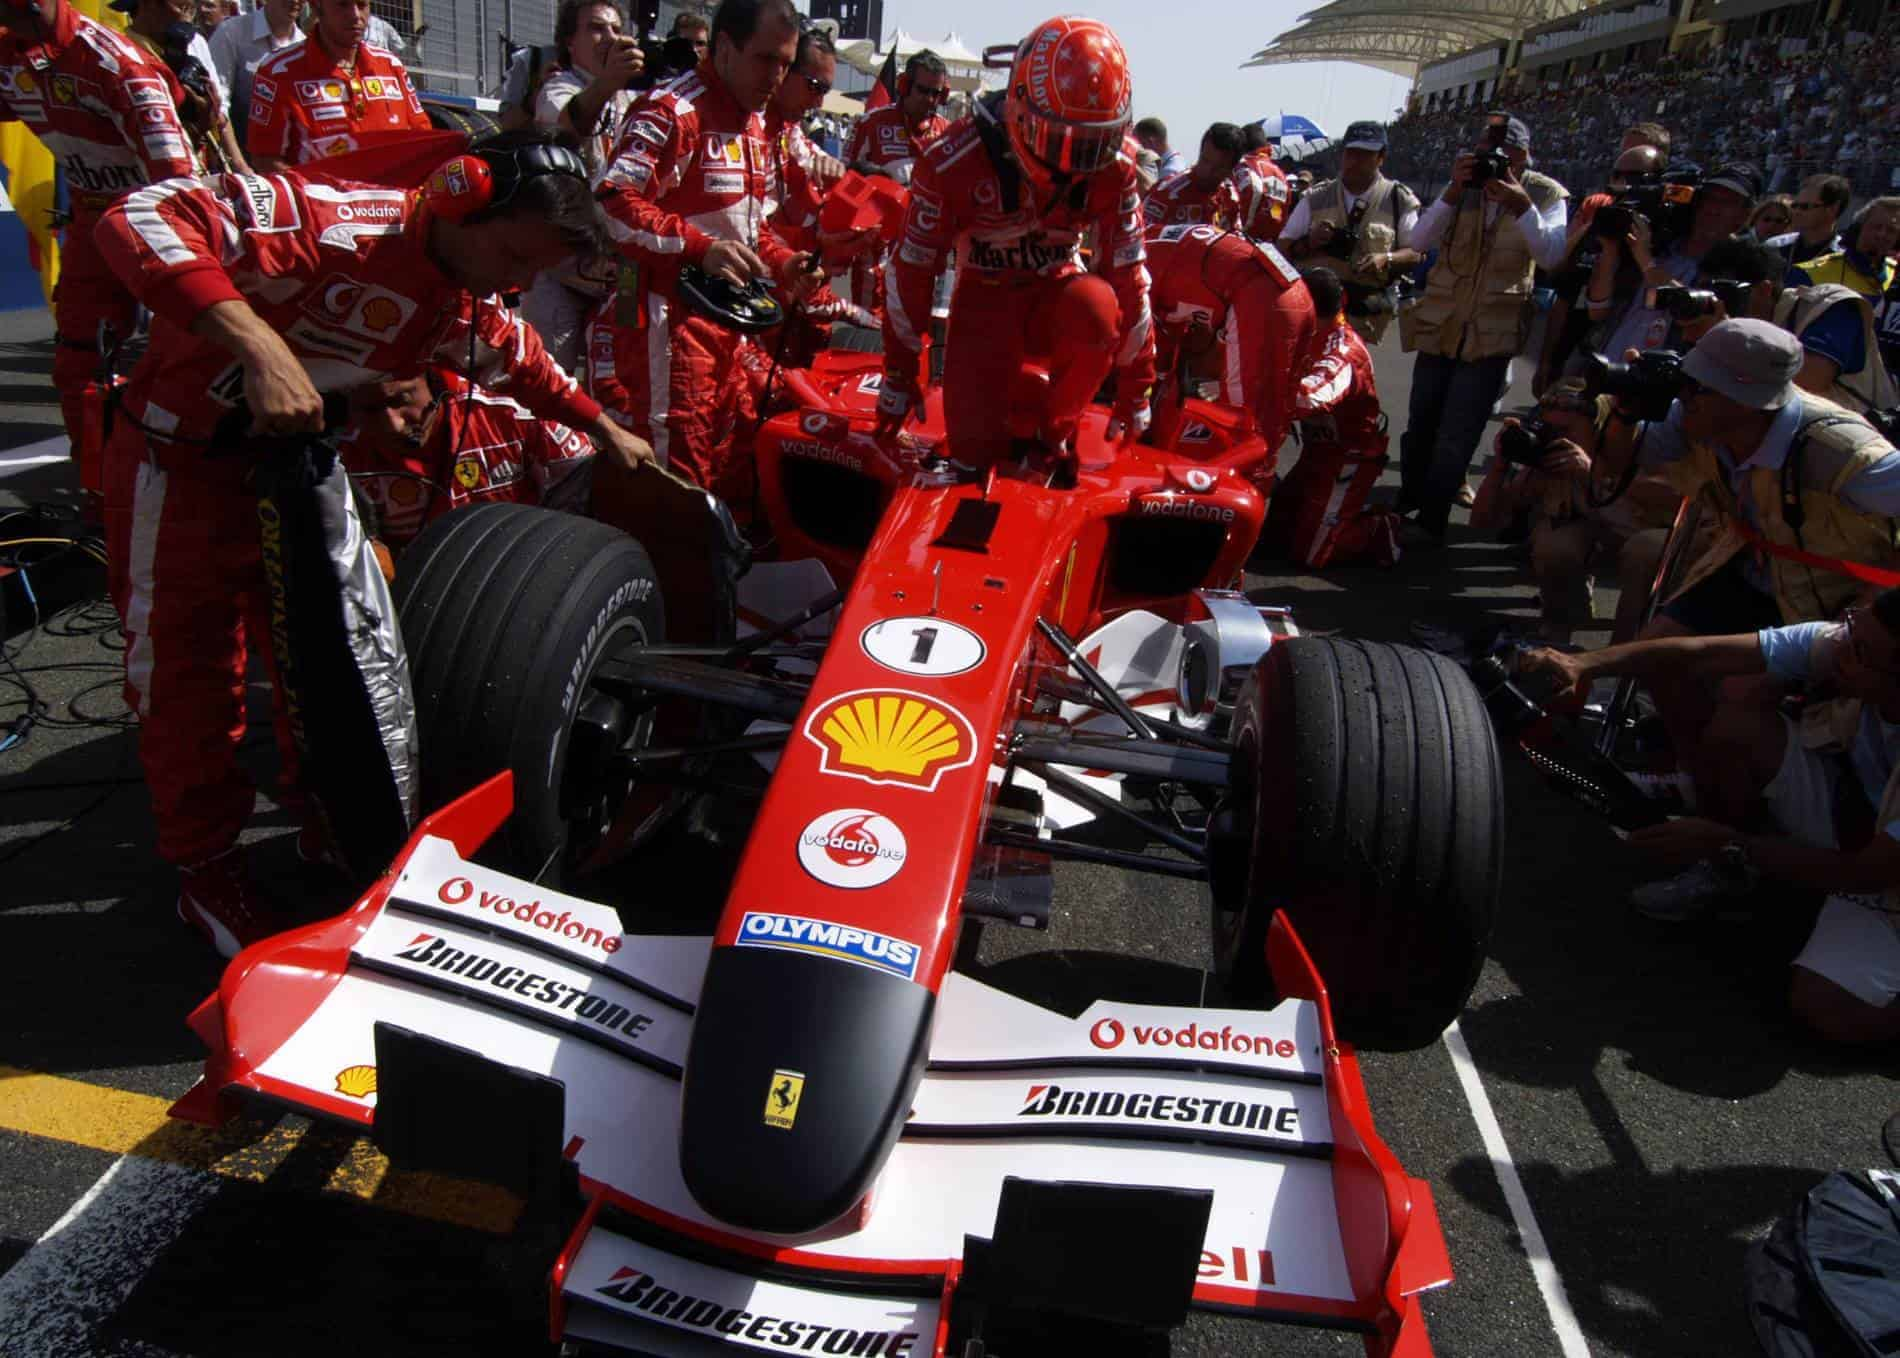 Michael-Schumacher-Ferrari-F2005-black-nose-Bahrain-F1-2005-starting-grid